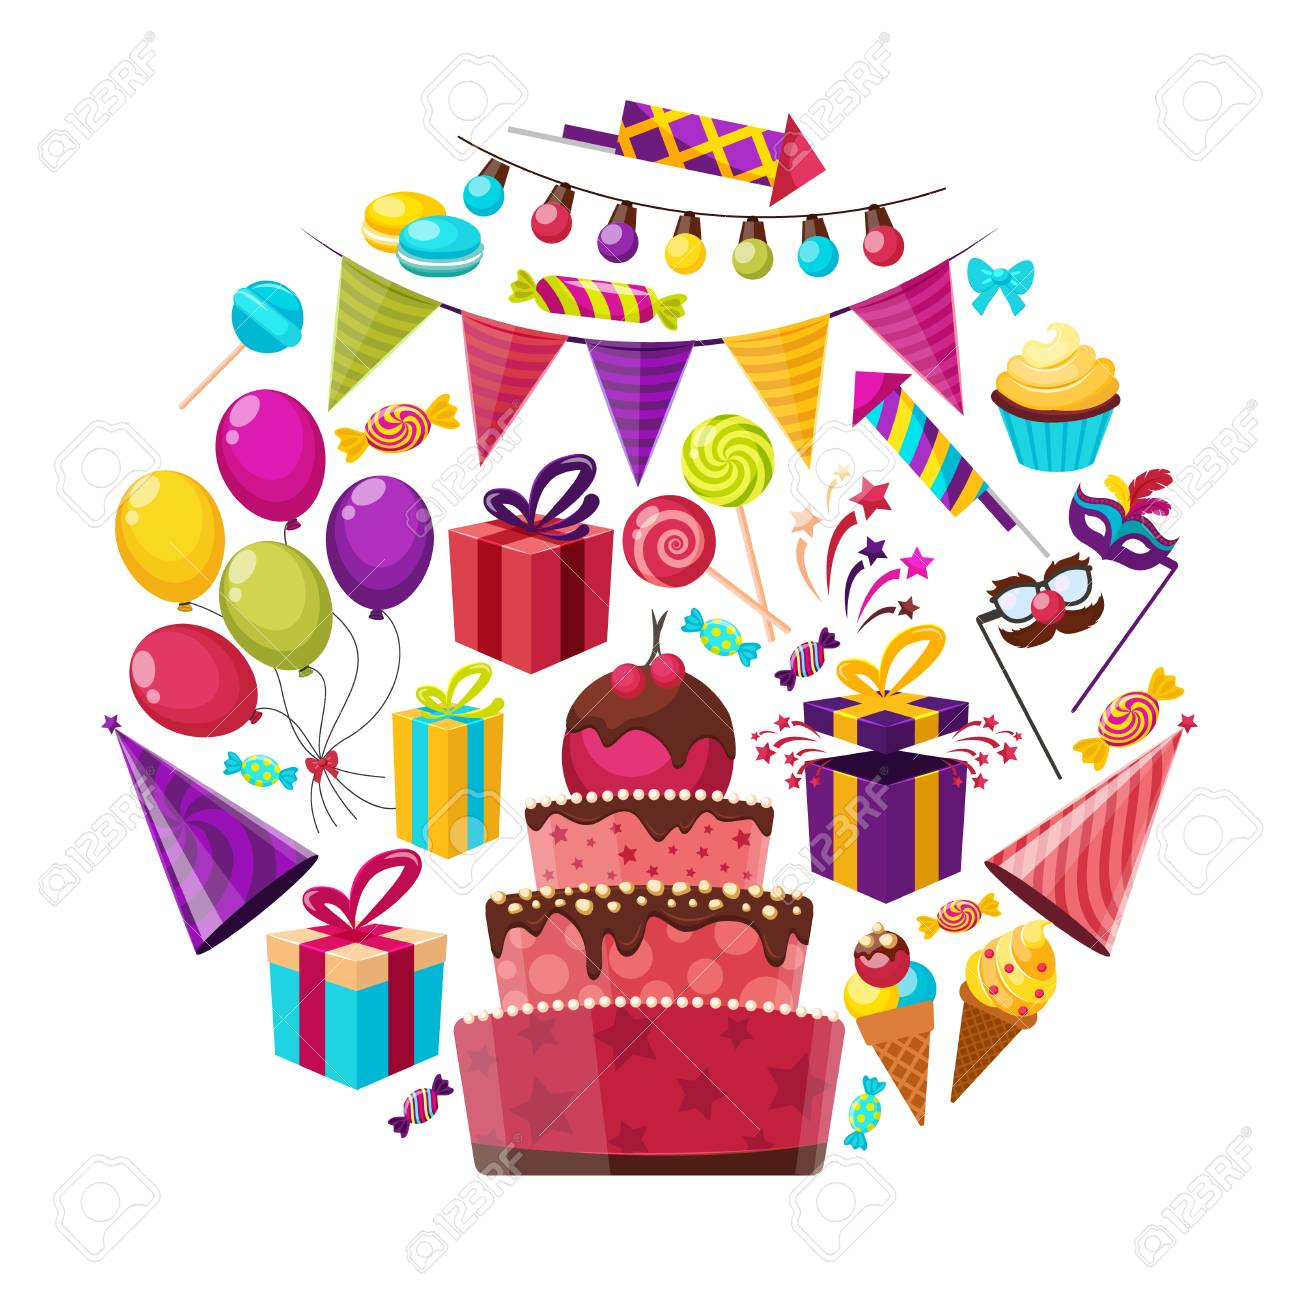 Birthday Party Isolated Cartoon Symbols Round Composition With Royalty Free Cliparts Vectors And Stock Illustration Image 68997159